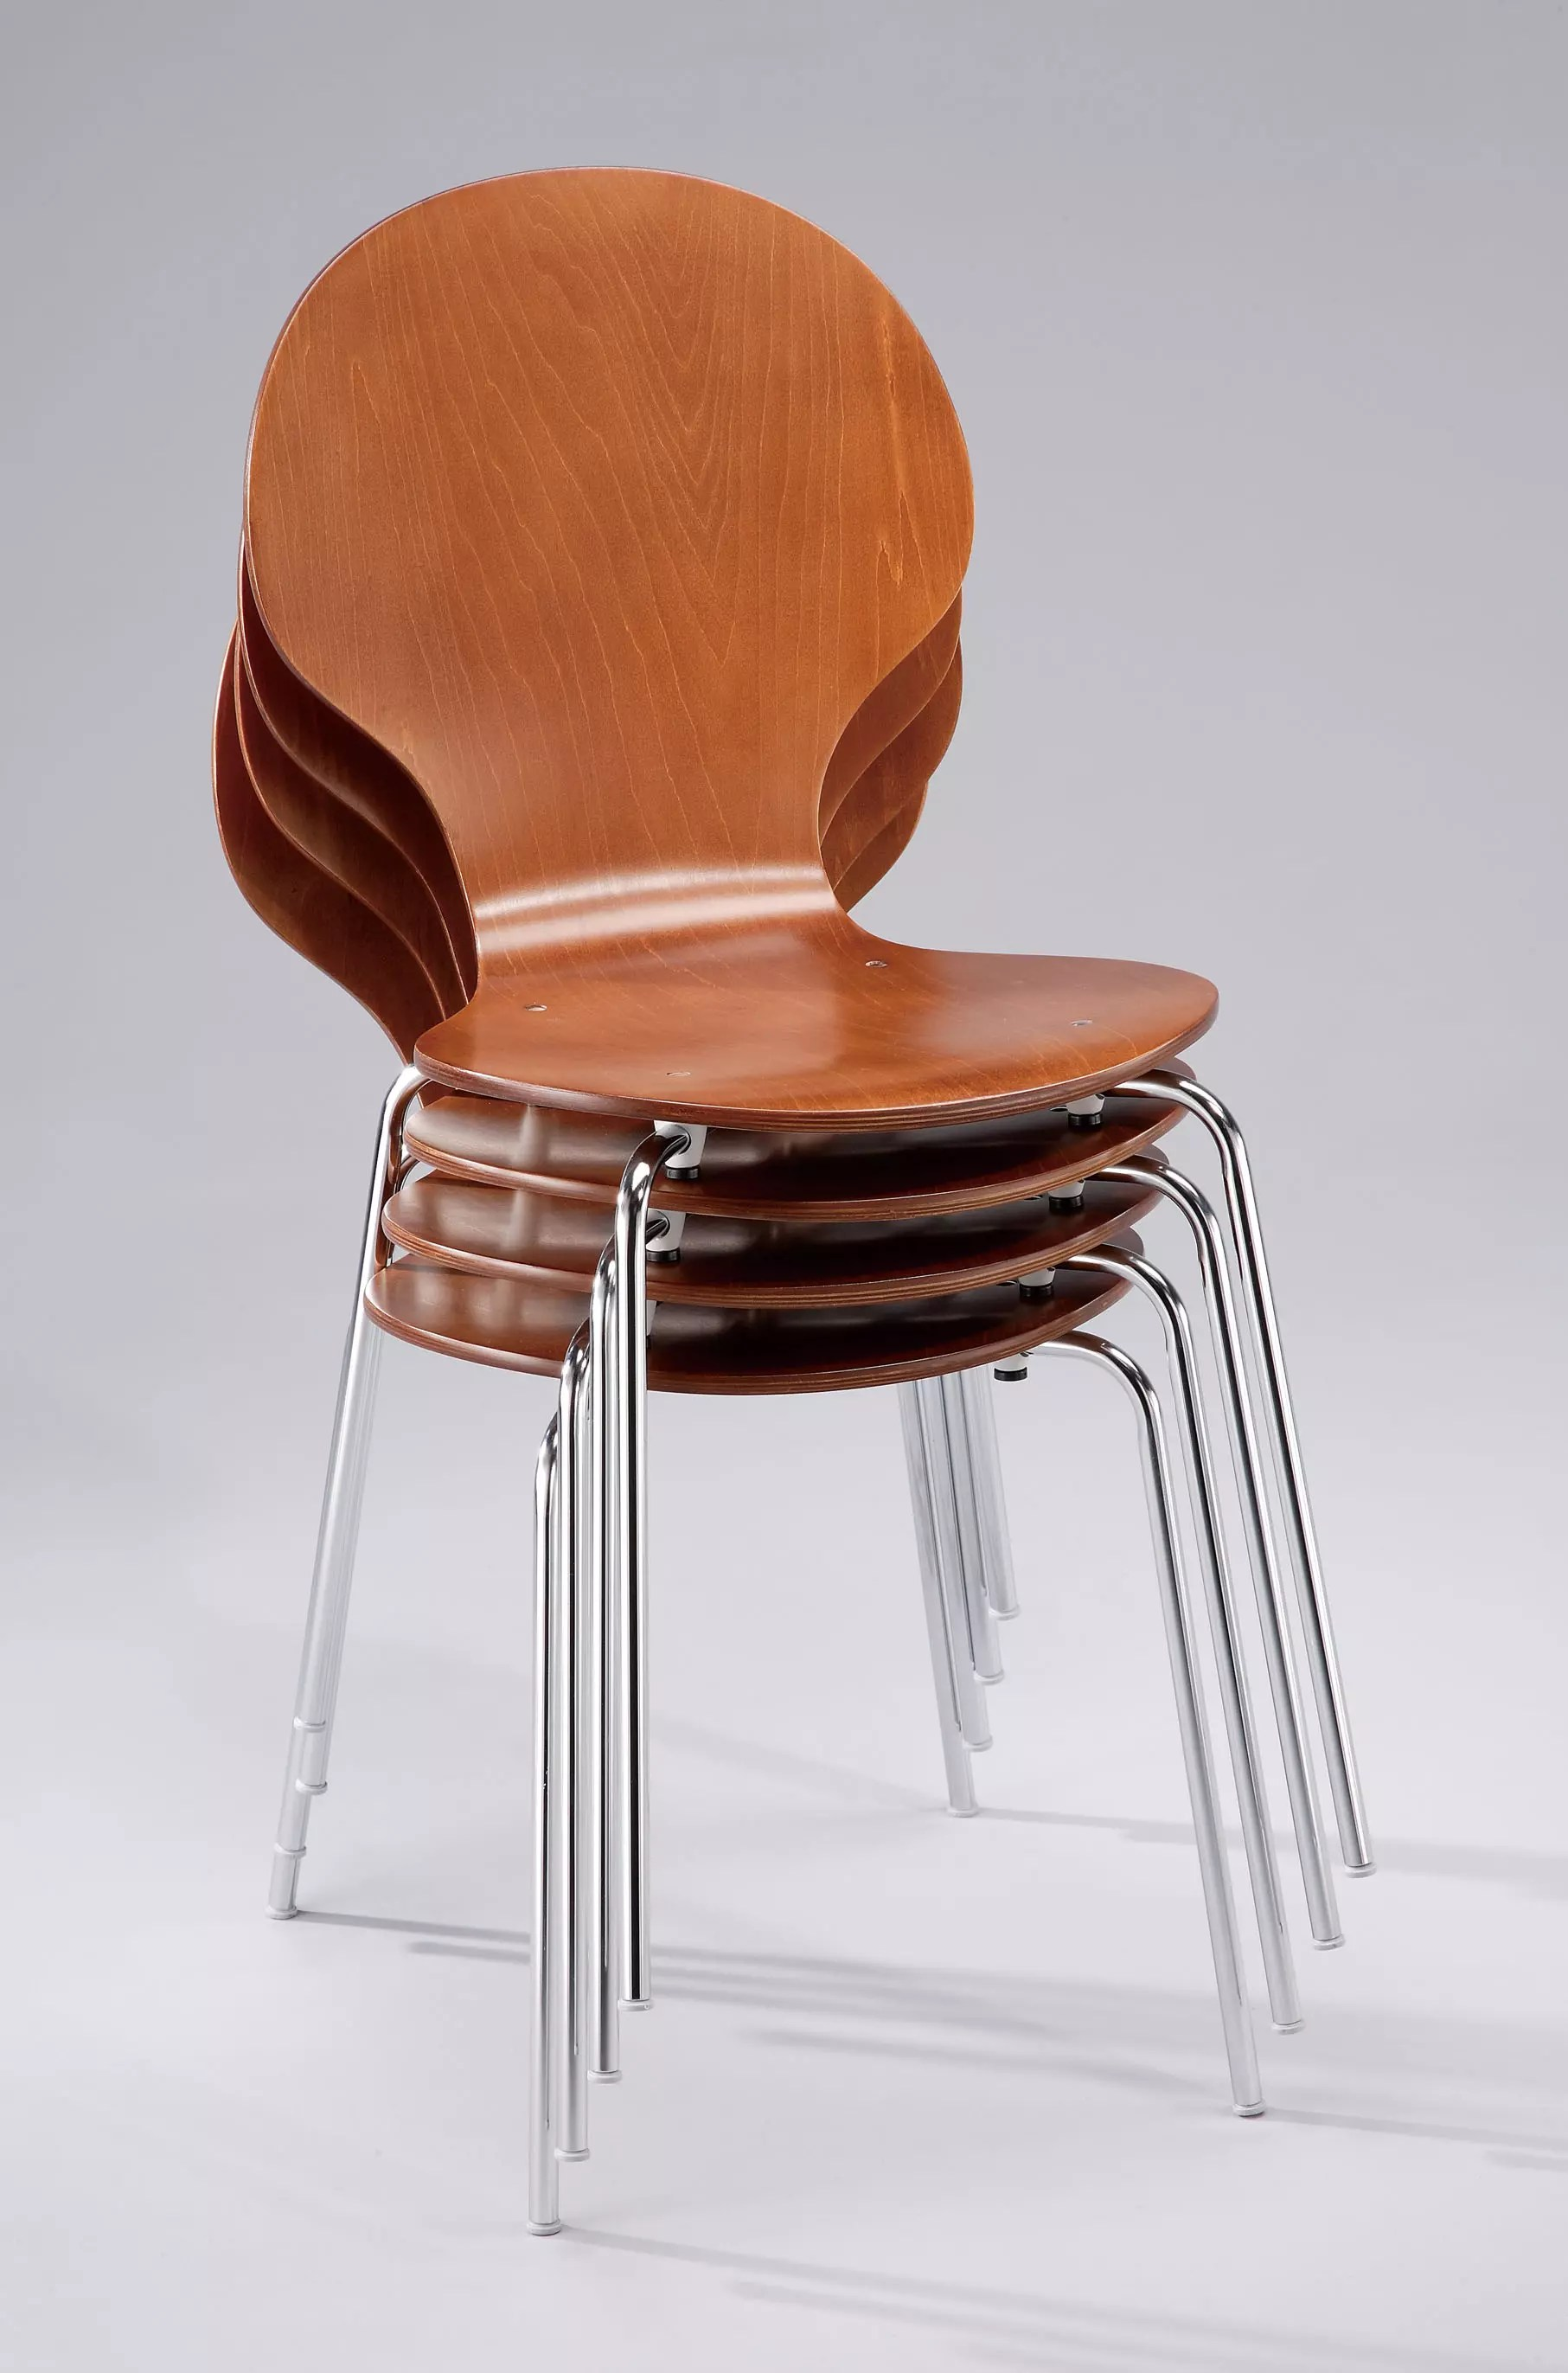 bent wood dining chairs folding bag sam yi furniture manufacturer in room chair home